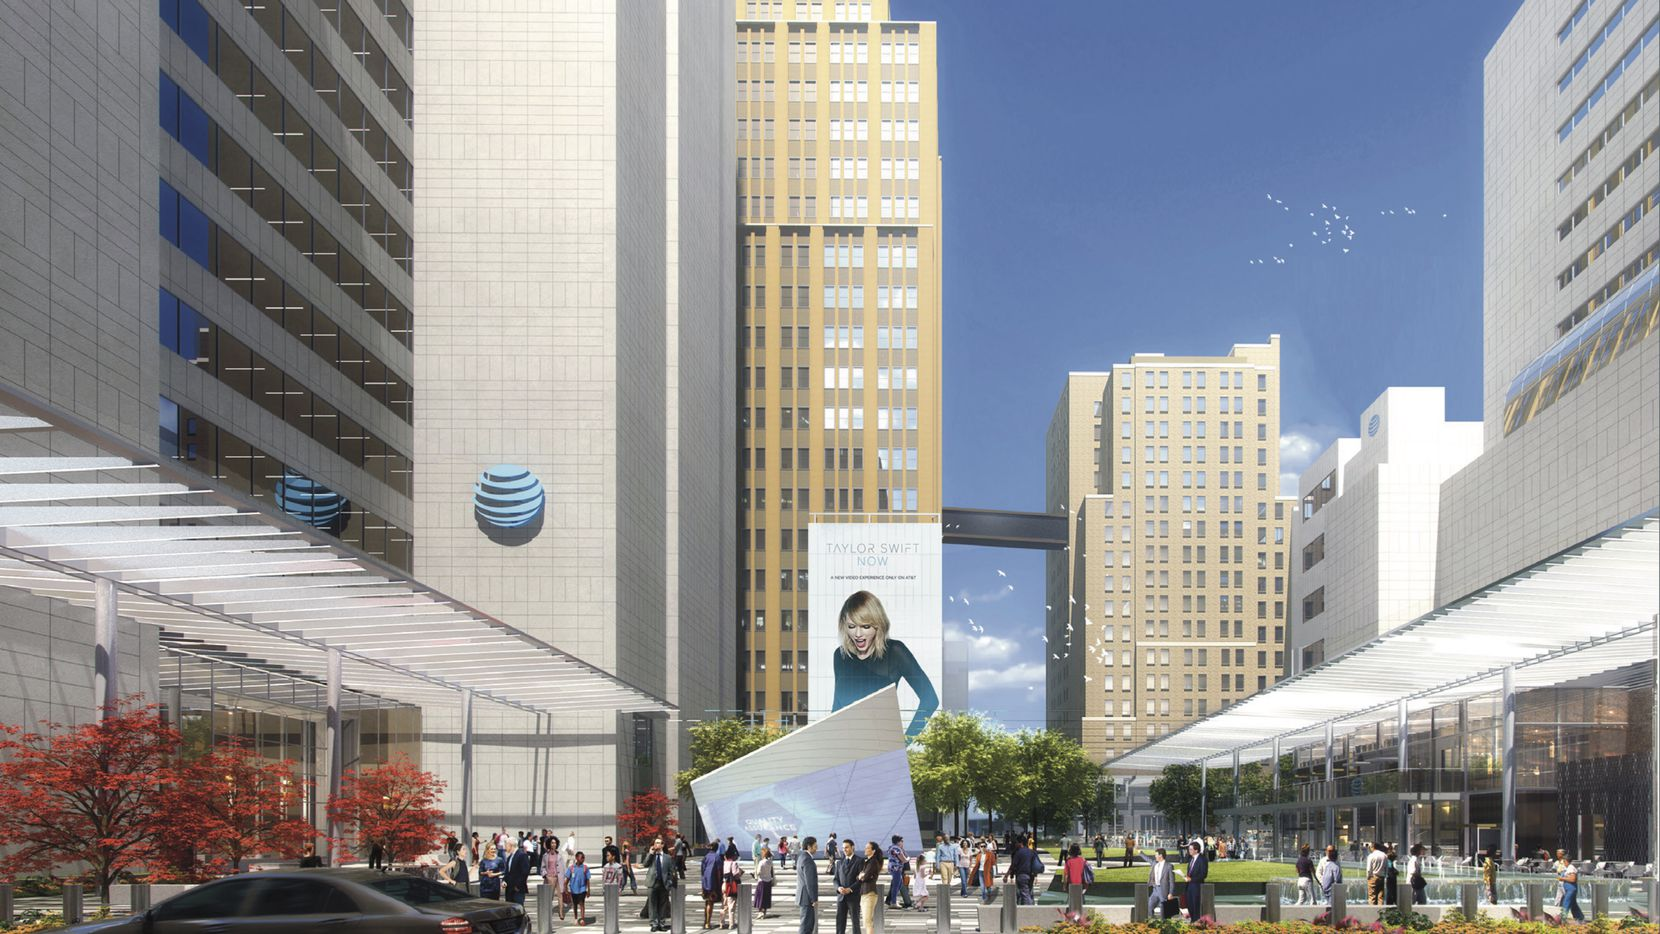 AT&T's Discovery District on Commerce Street will include new public gathering areas, restaurants and retail space at the company's downtown headquarters.